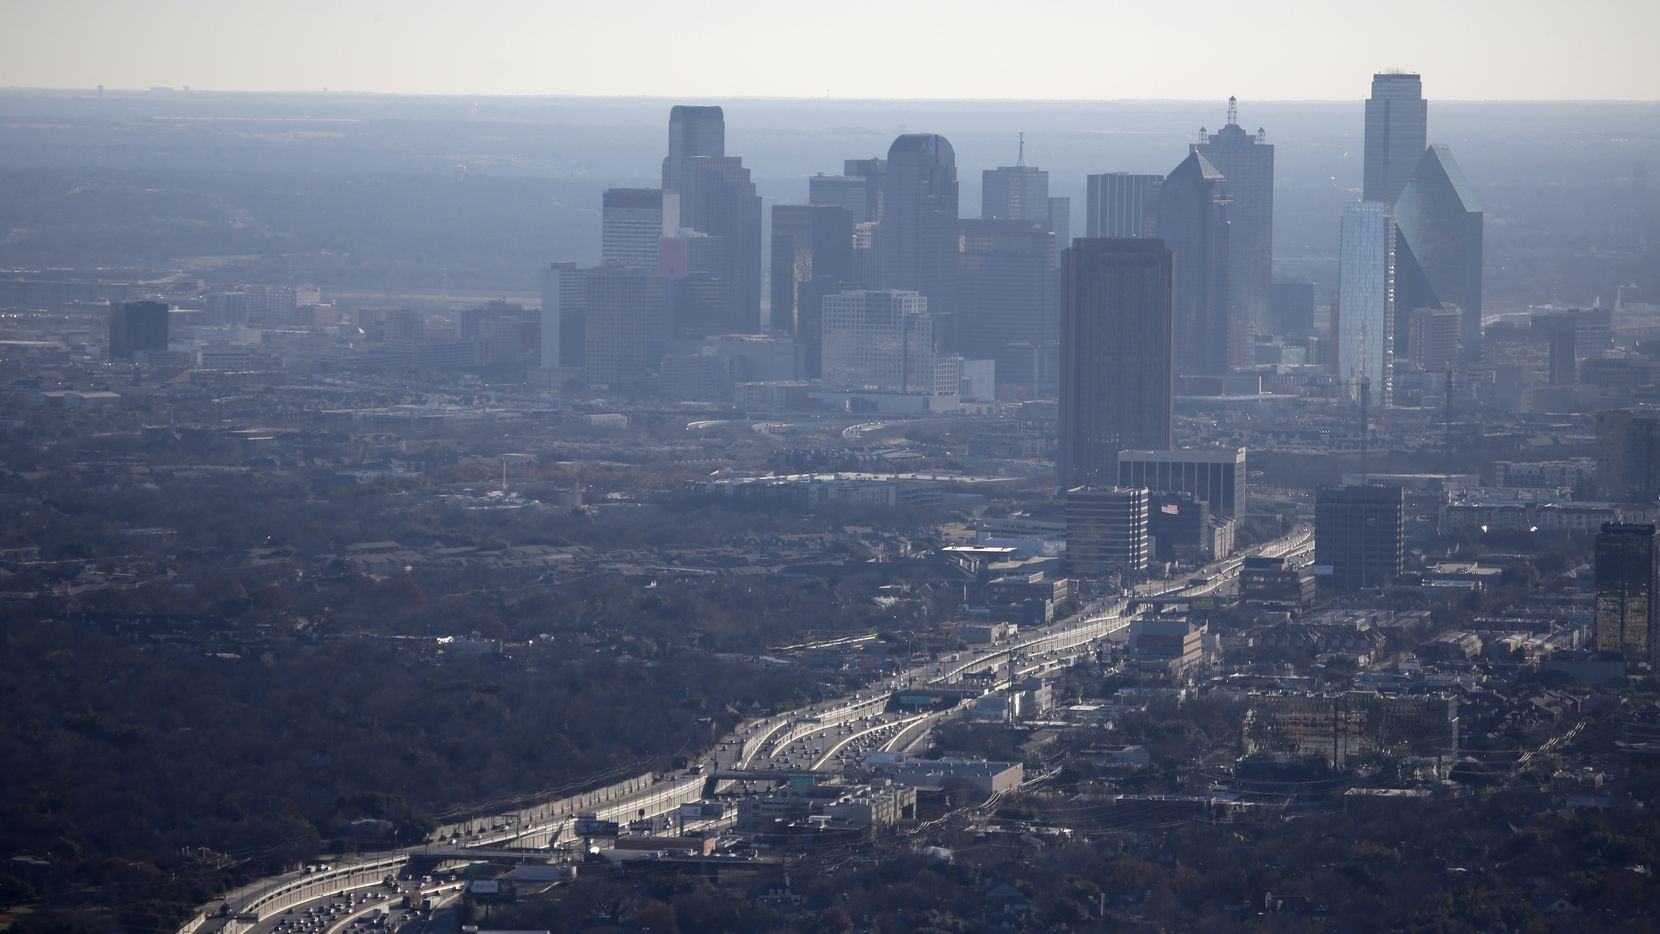 The air hangs with haze as traffic moves on Hwy. 75 Central Expressway.